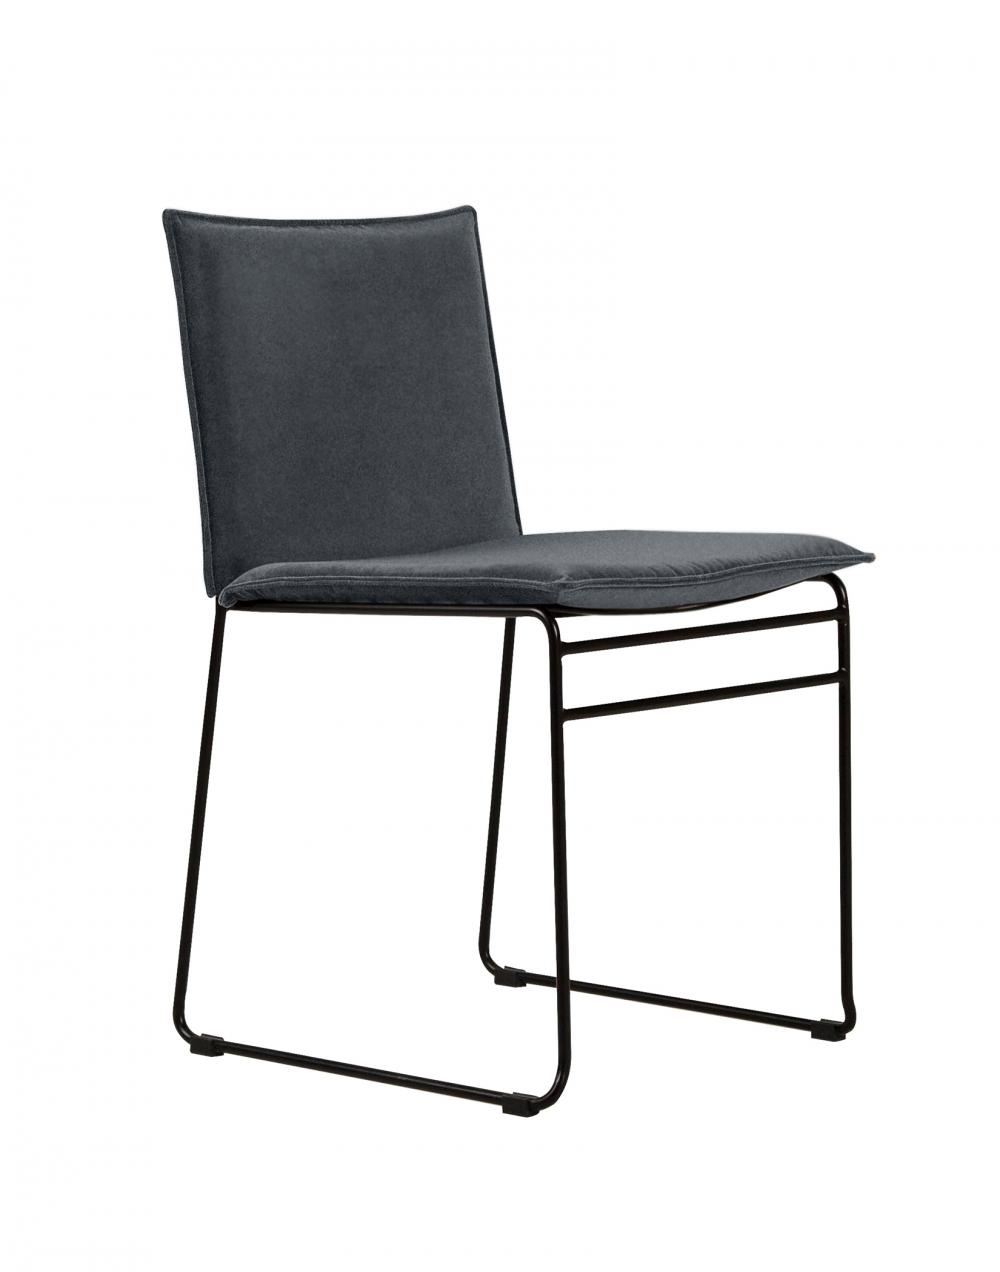 Kyst dining chair outdoor